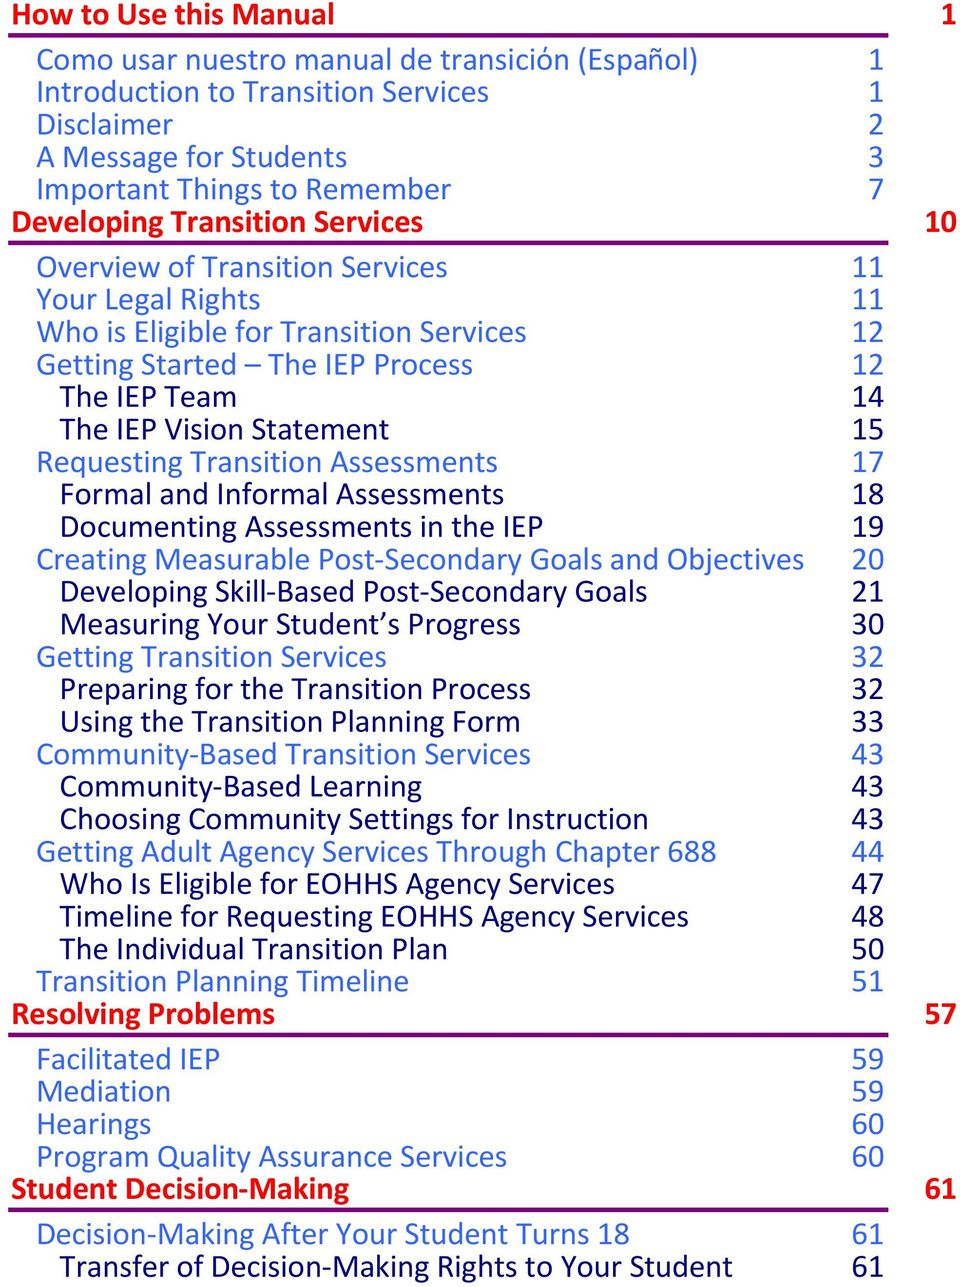 15 Requesting Transition Assessments Formal and Informal Assessments 17 18 Documenting Assessments in the IEP 19 Creating Measurable Post-Secondary Goals and Objectives Developing Skill-Based